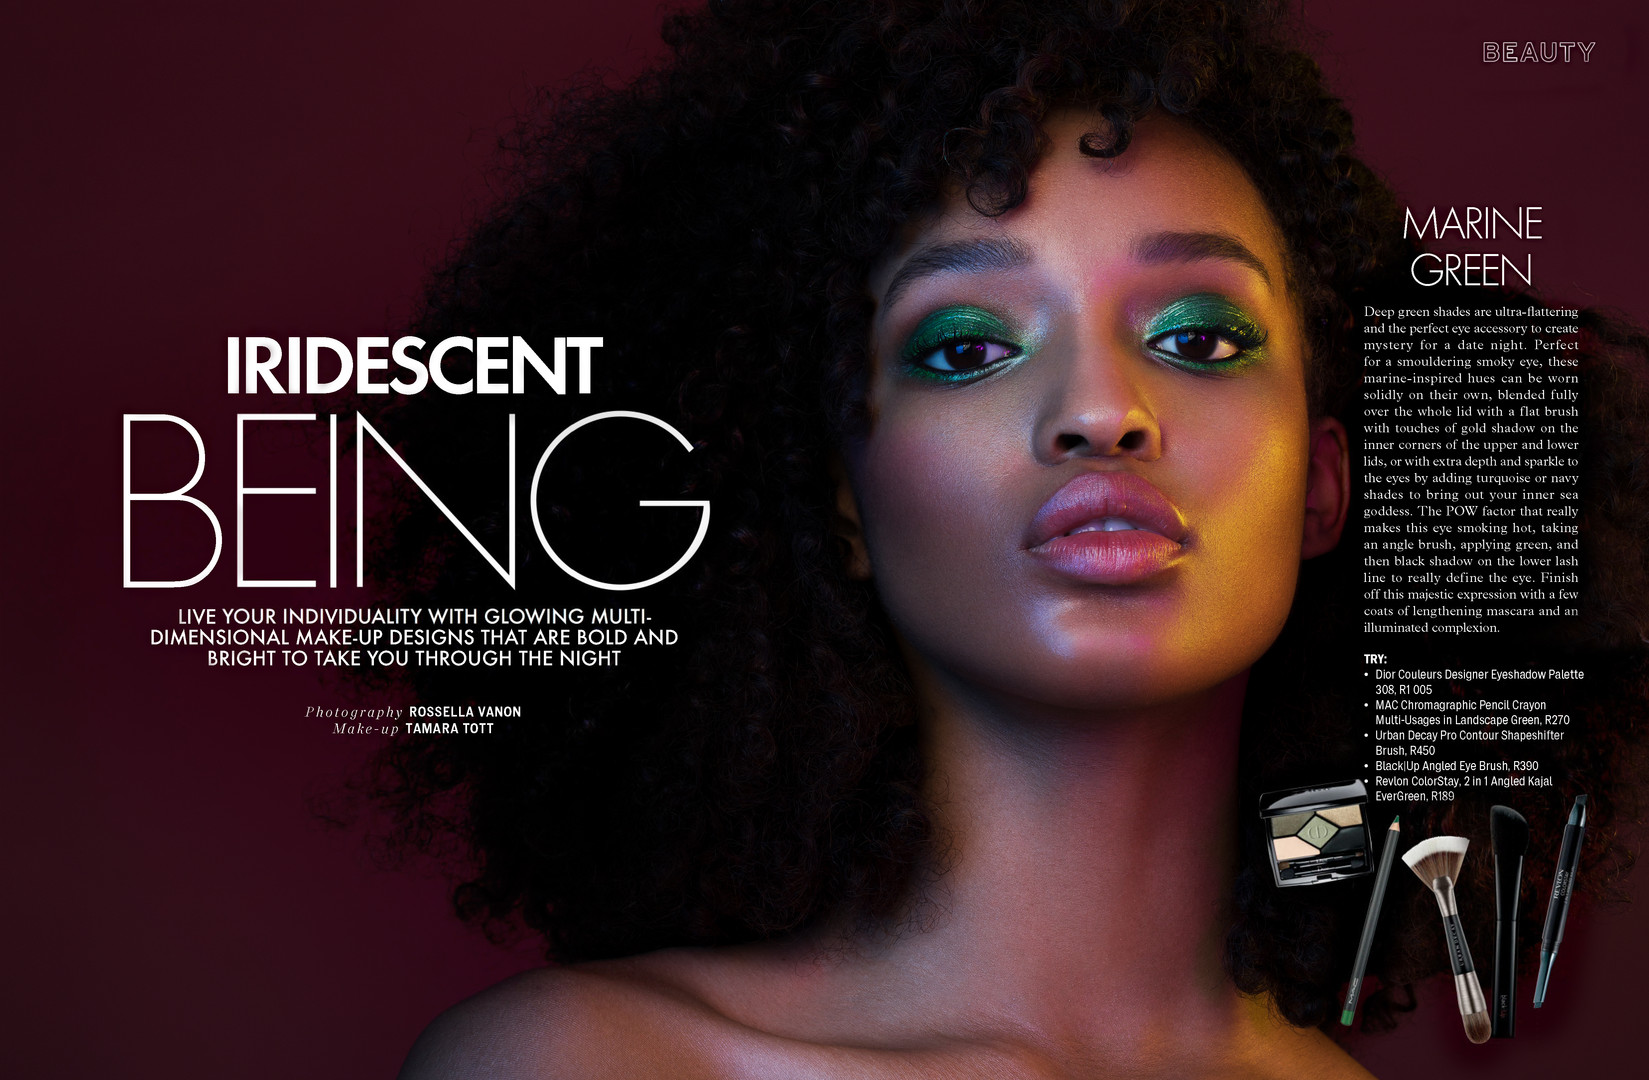 PUBLISHED MAKEUP ARTIST ANDHAIR STYLIST